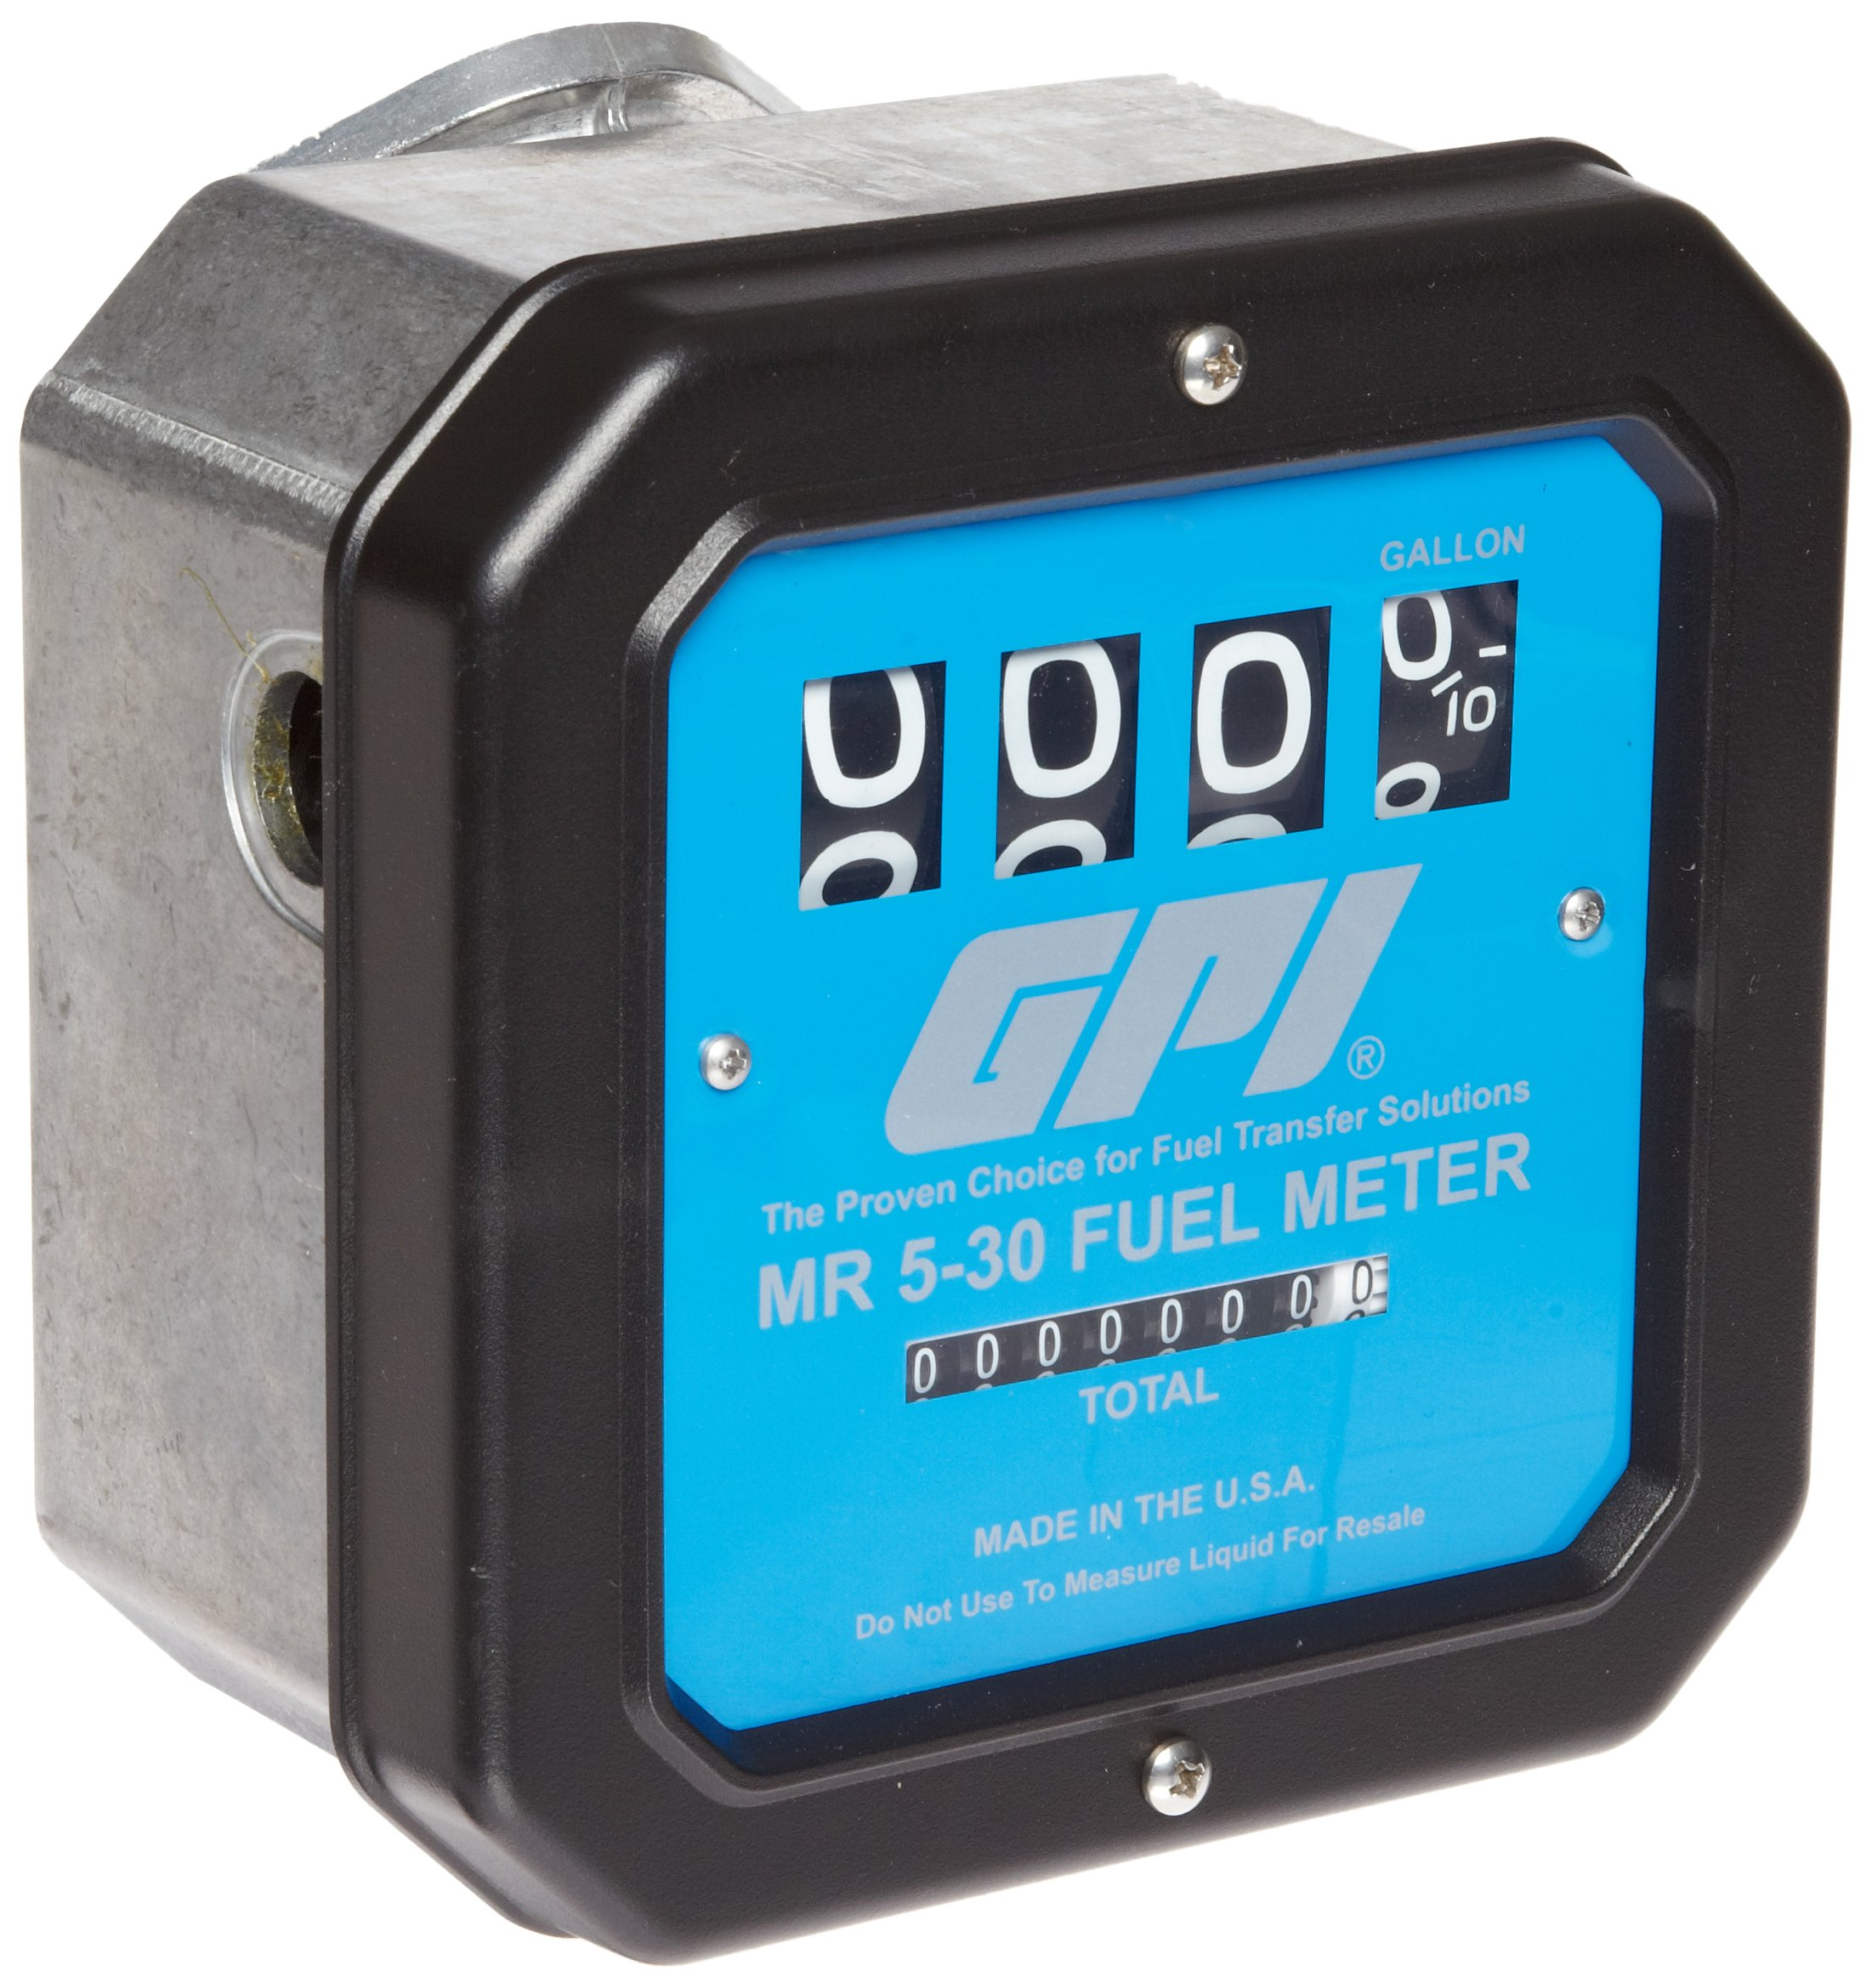 GPI 126300-01, MR530-G6N Mechanical Disk Fuel Flowmeter .75-Inch Inlet/Outlet, 5-30 GPM, 4-Digit Batch Display, Non-Resettable Cumulative Total, +/-2 Percent Accuracy